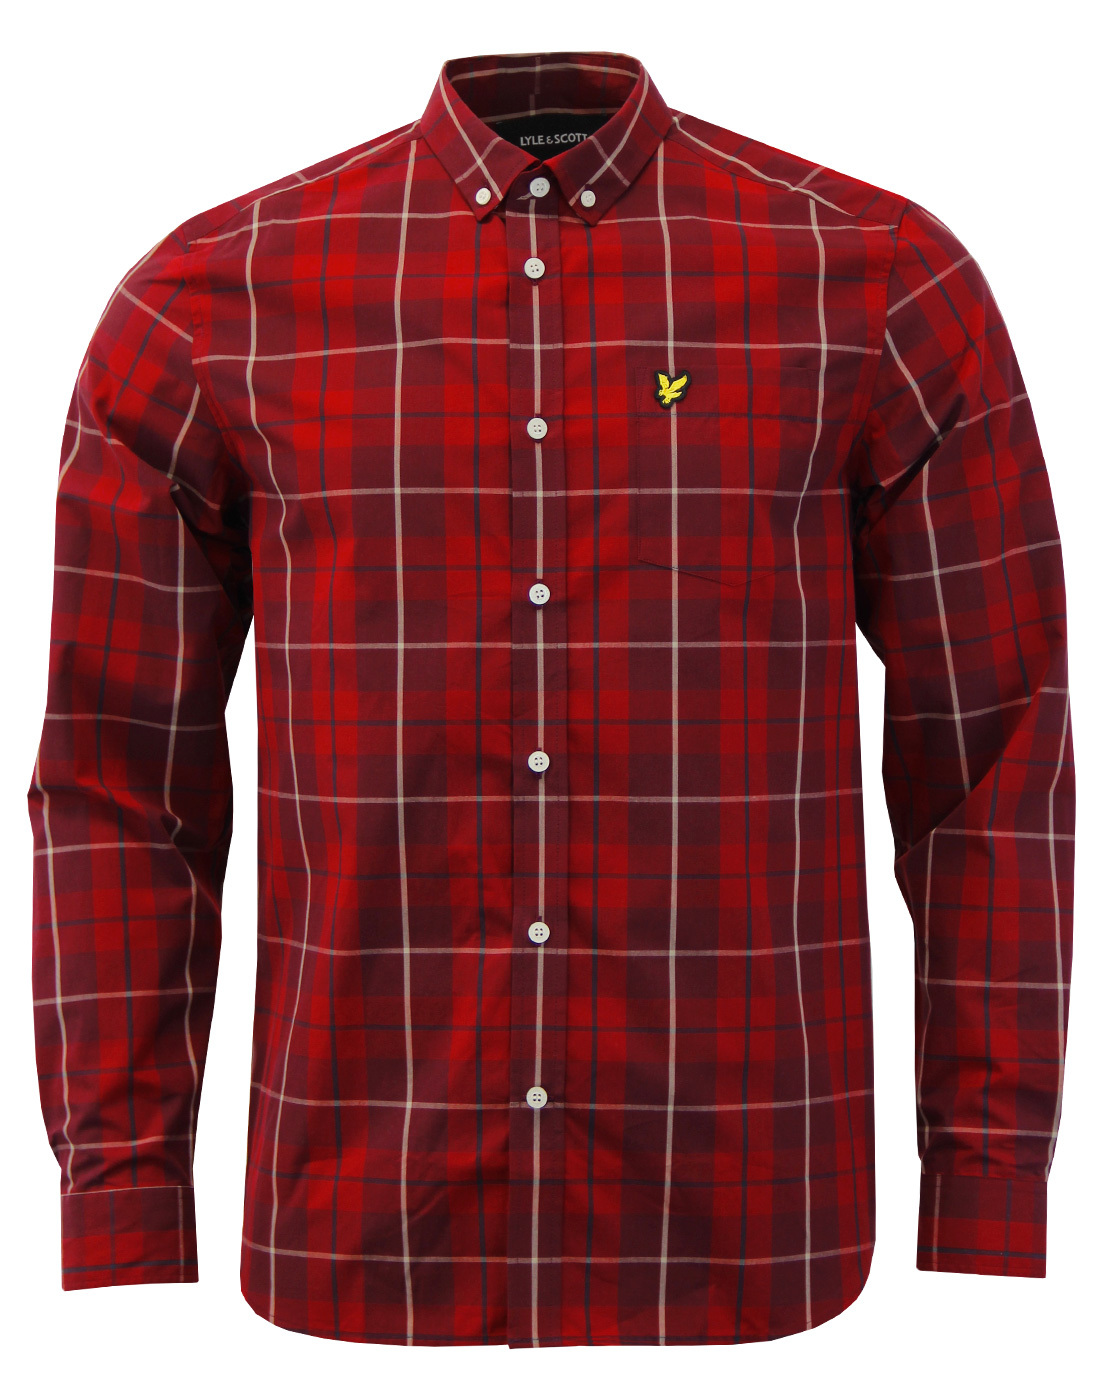 LYLE & SCOTT Mod Button Down Poplin Check Shirt